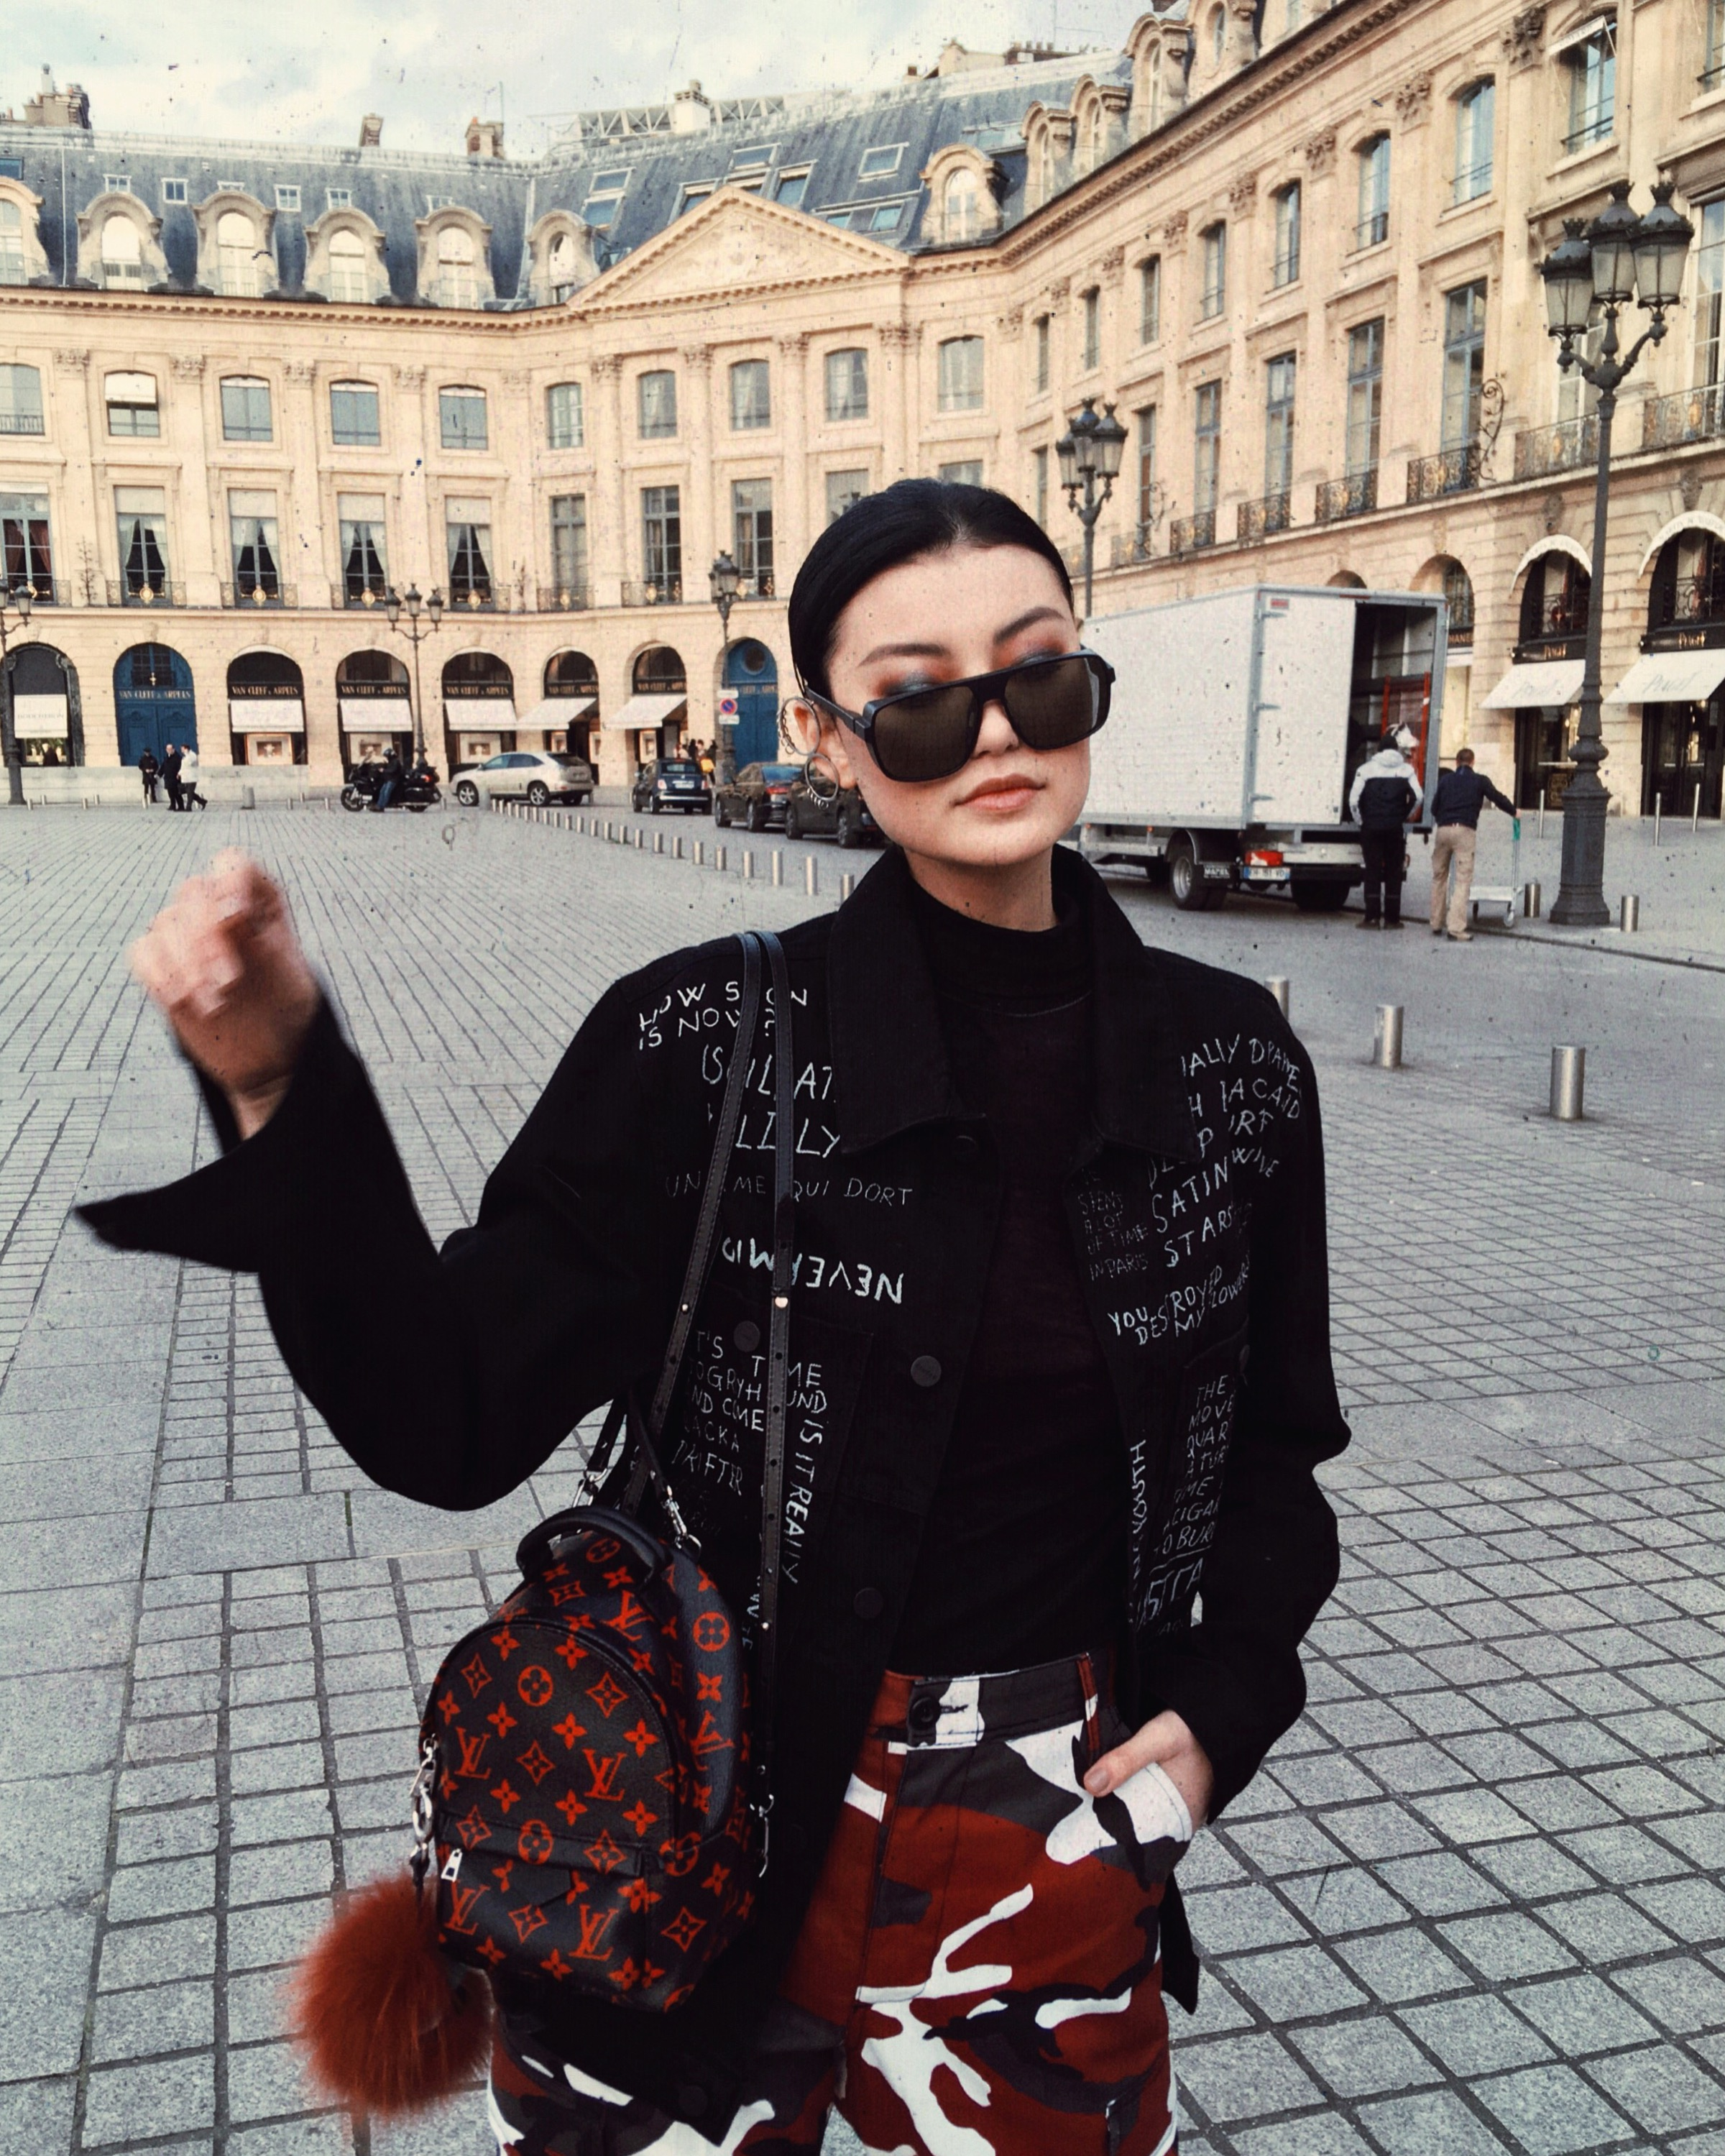 Model Parisian and MYKITA fan Amalie Gassmann shares her local tips for Paris in 24 hours with MYKITA JOURNAL